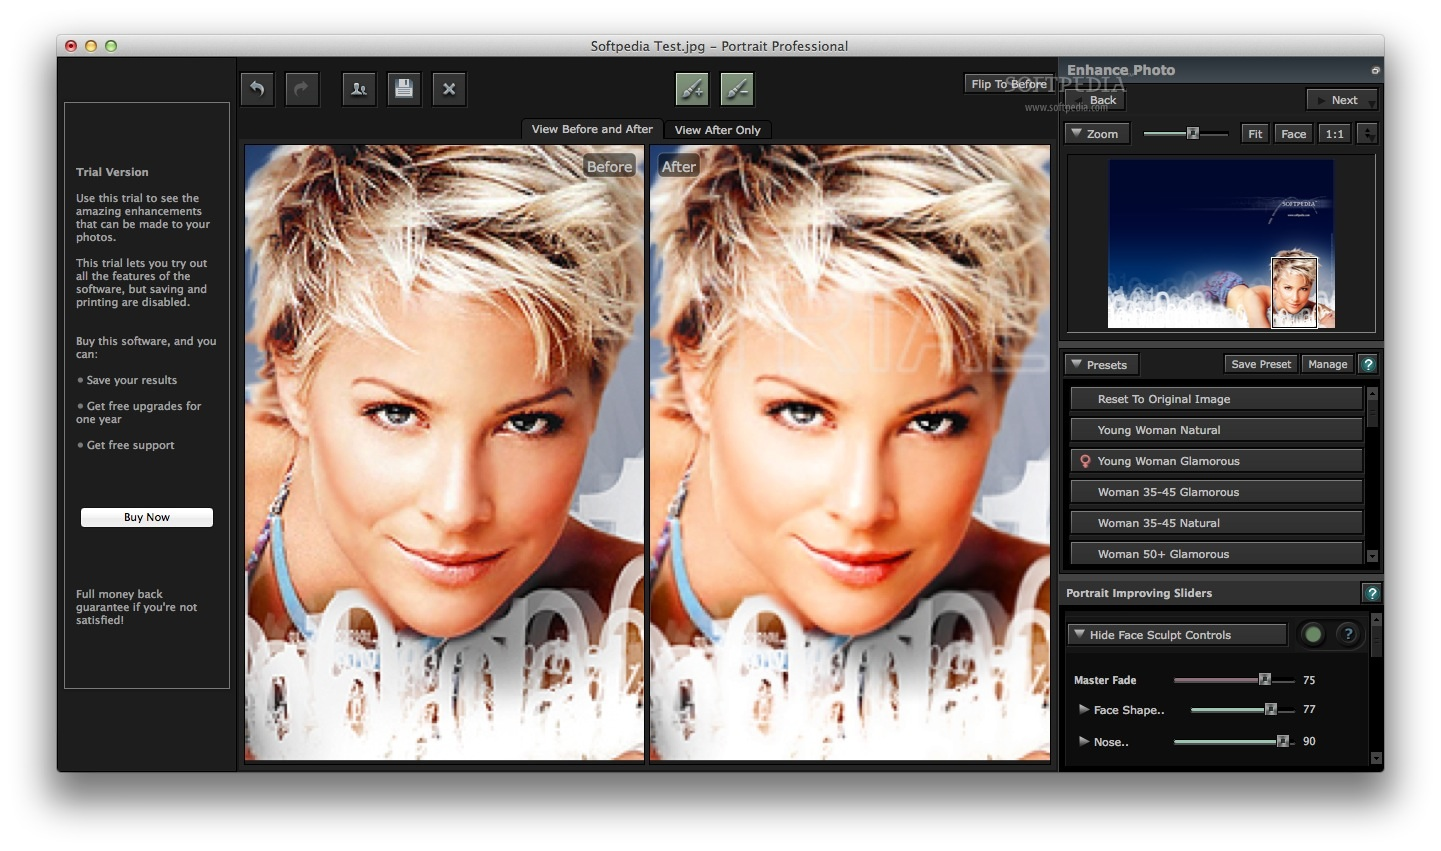 Portrait Professional screenshot 1 - By accessing the main window of the application, you will be able to modify the original photo using presets or sliders.